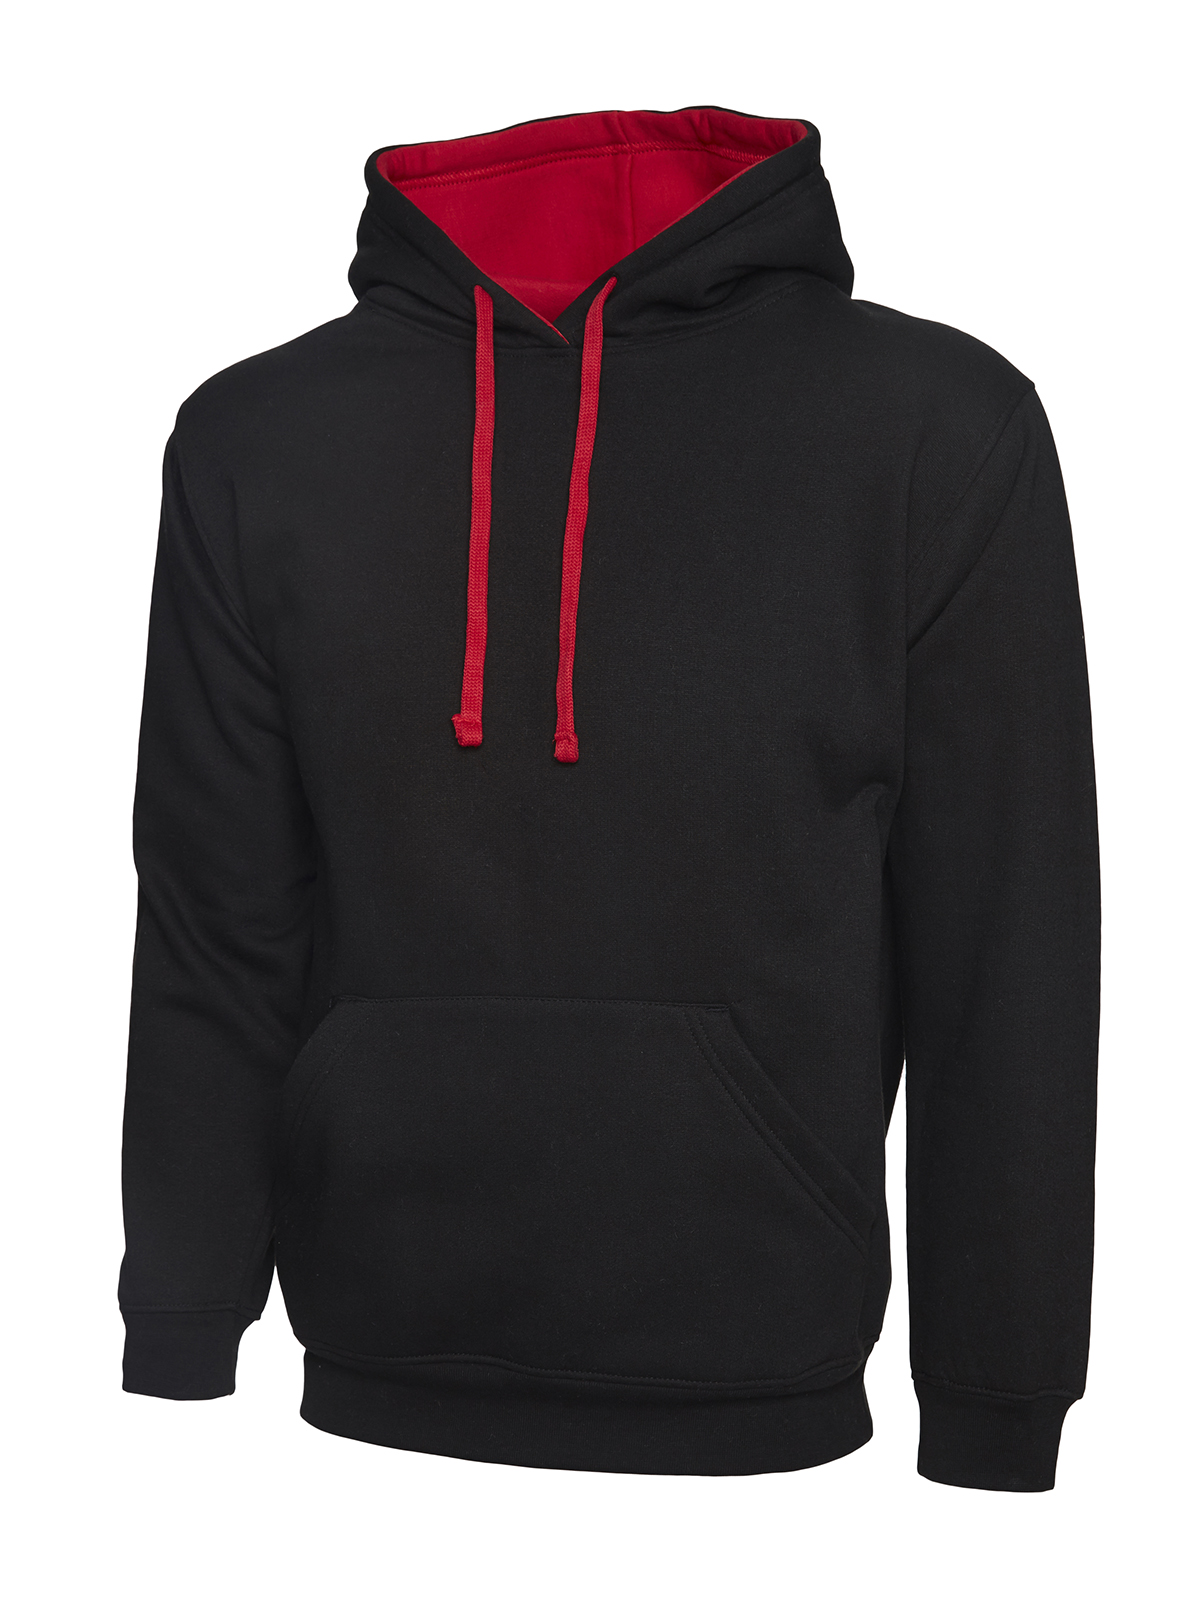 Uneek UC507 Contrast Hooded Sweatshirt A